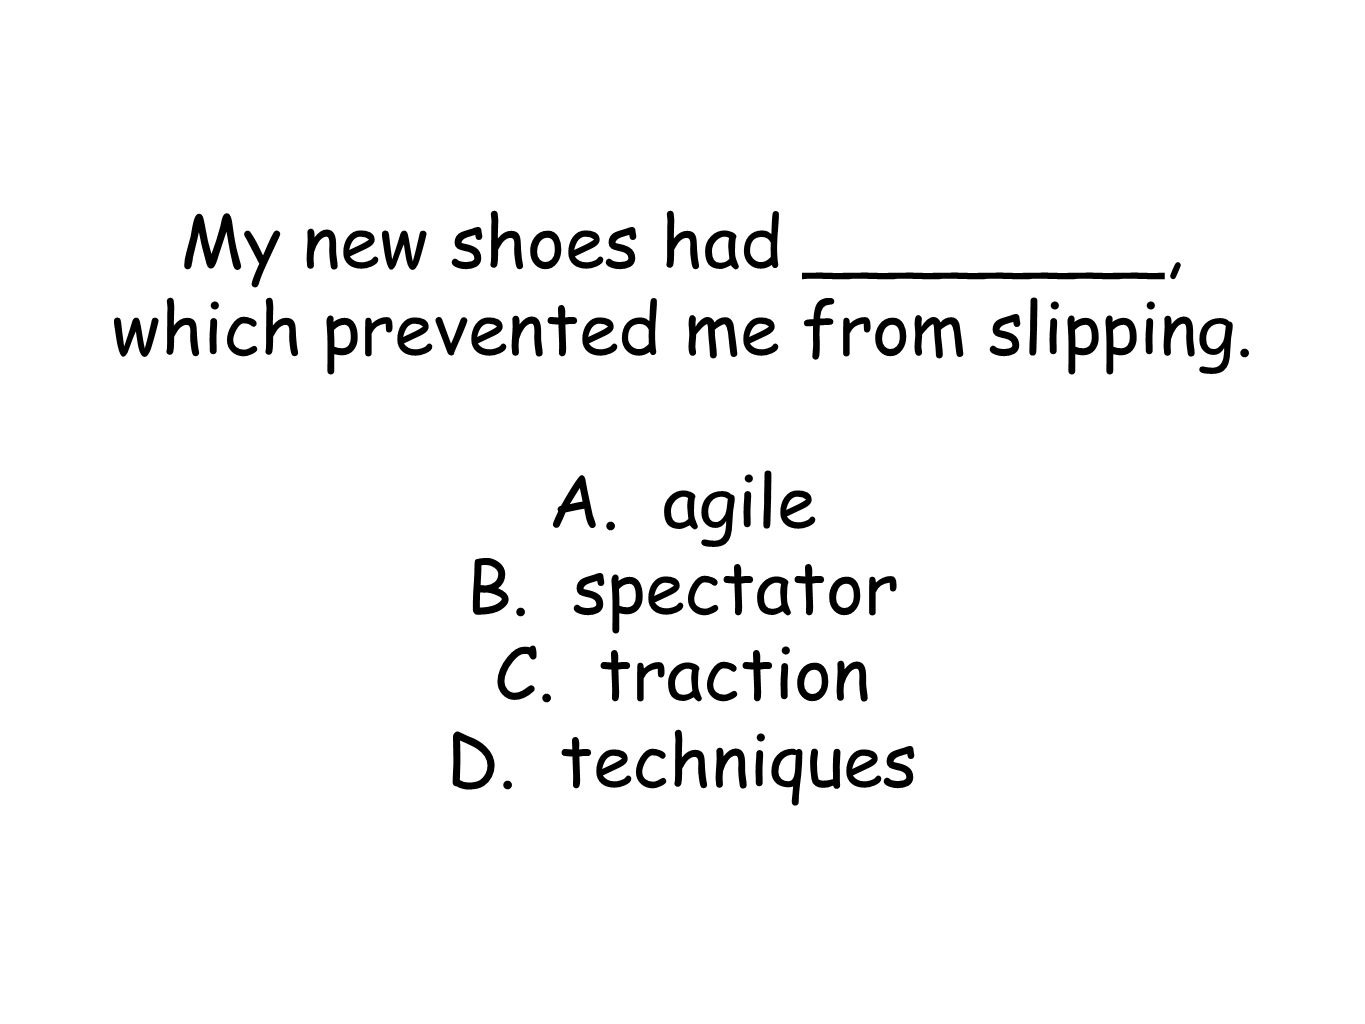 My new shoes had ________, which prevented me from slipping.